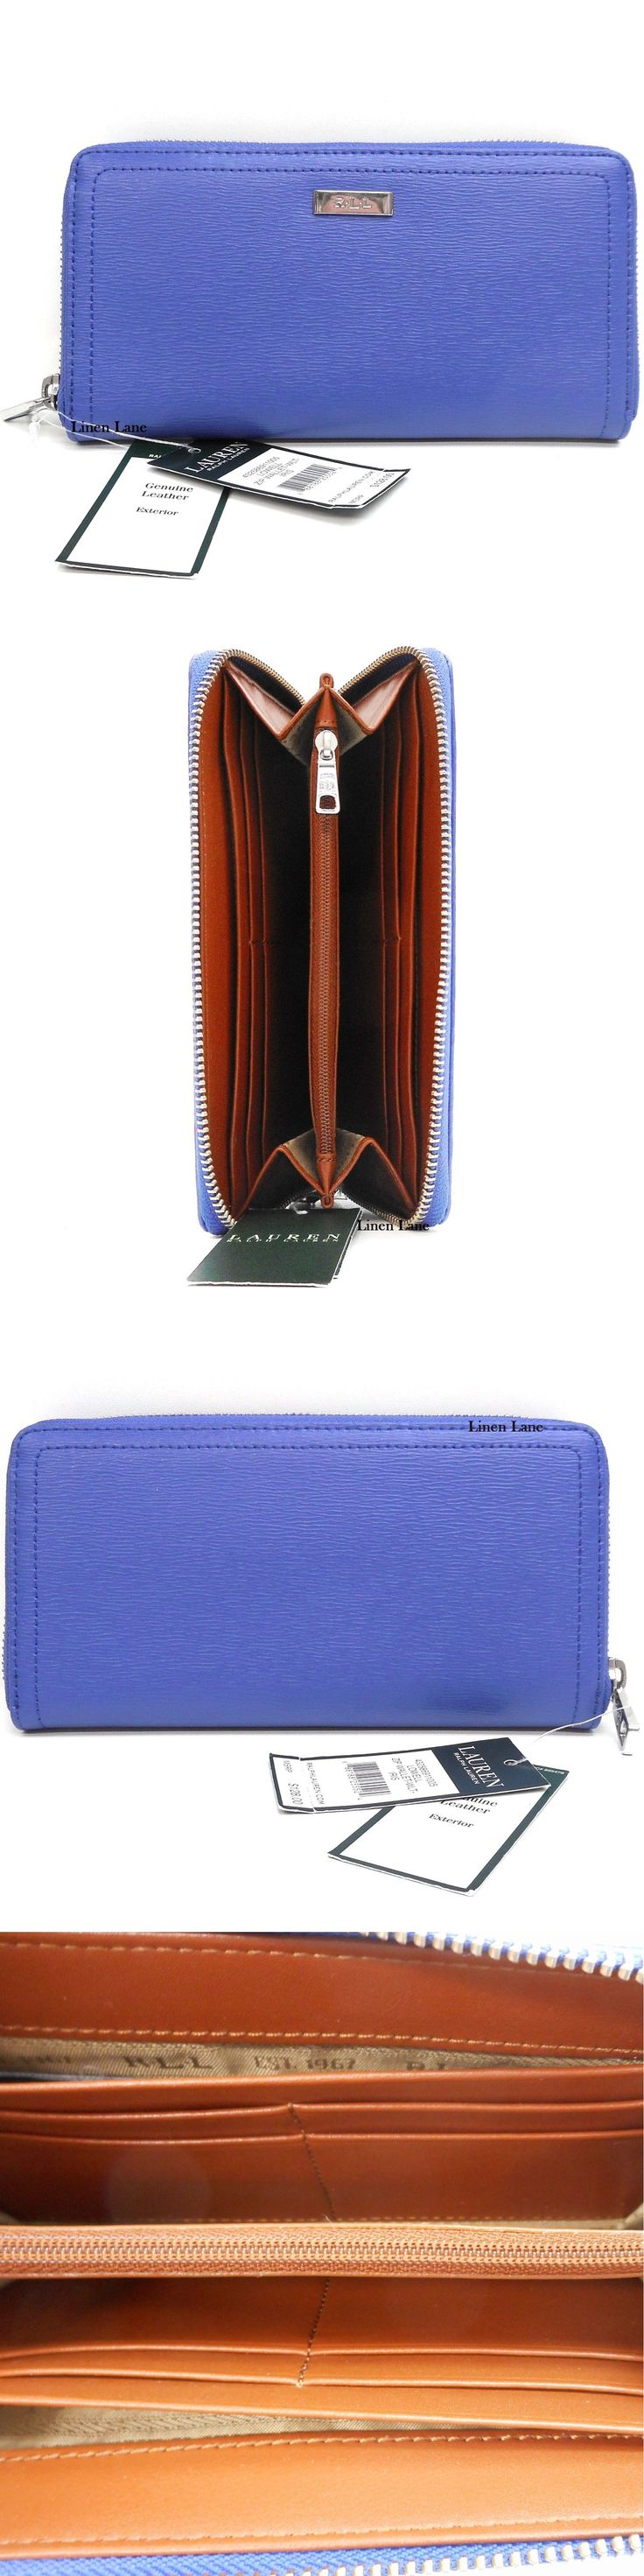 Other Womens Golf Clothing 181152: Ralph Lauren Lowell Blue Iris Leather Zip Around Wallet Silver New $128 Spring -> BUY IT NOW ONLY: $58 on eBay!